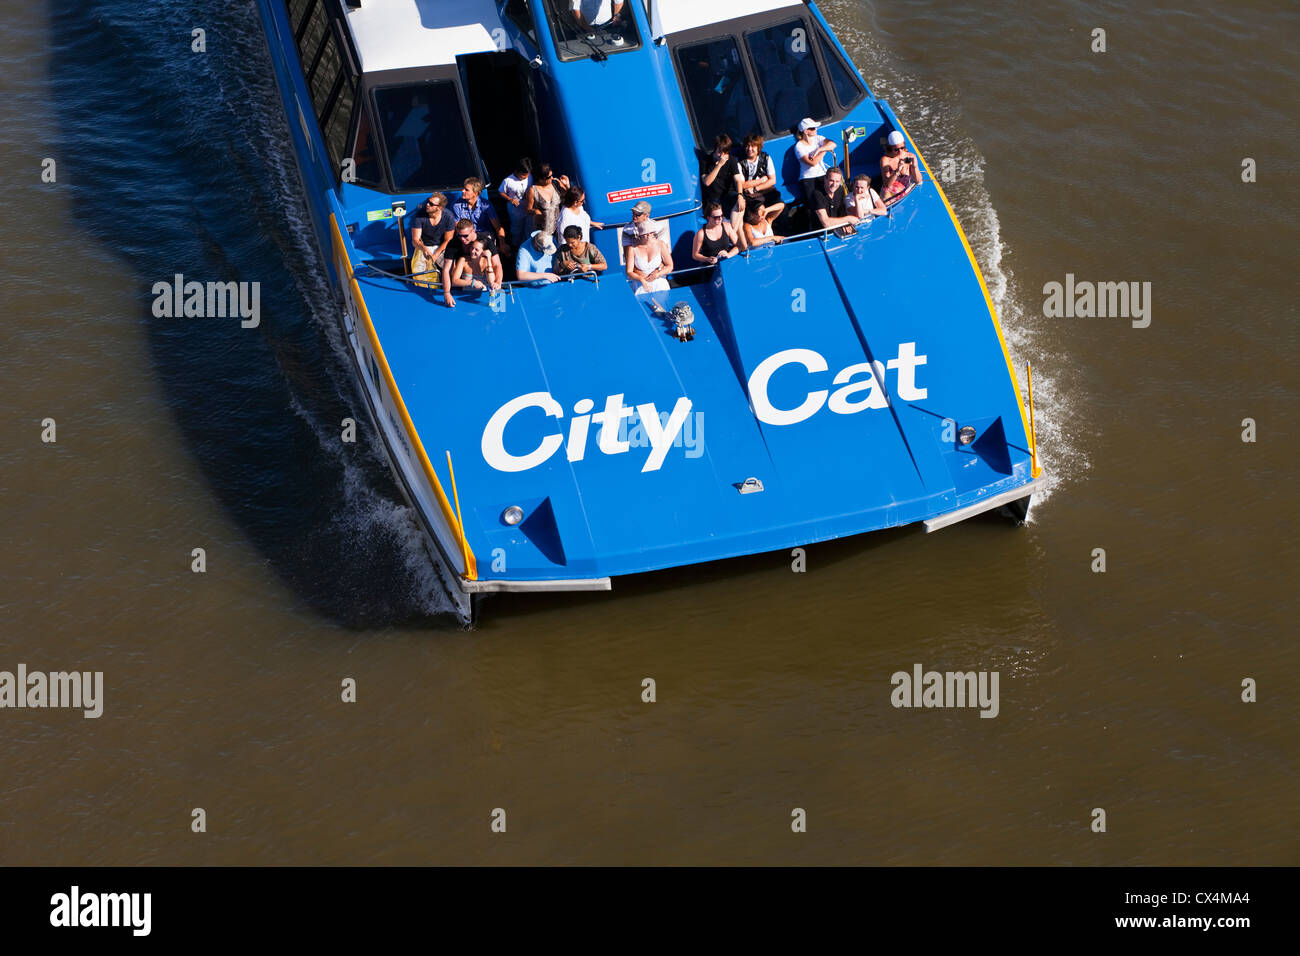 CityCat catamaran ferry on the Brisbane River. Brisbane, Queensland, Australia - Stock Image